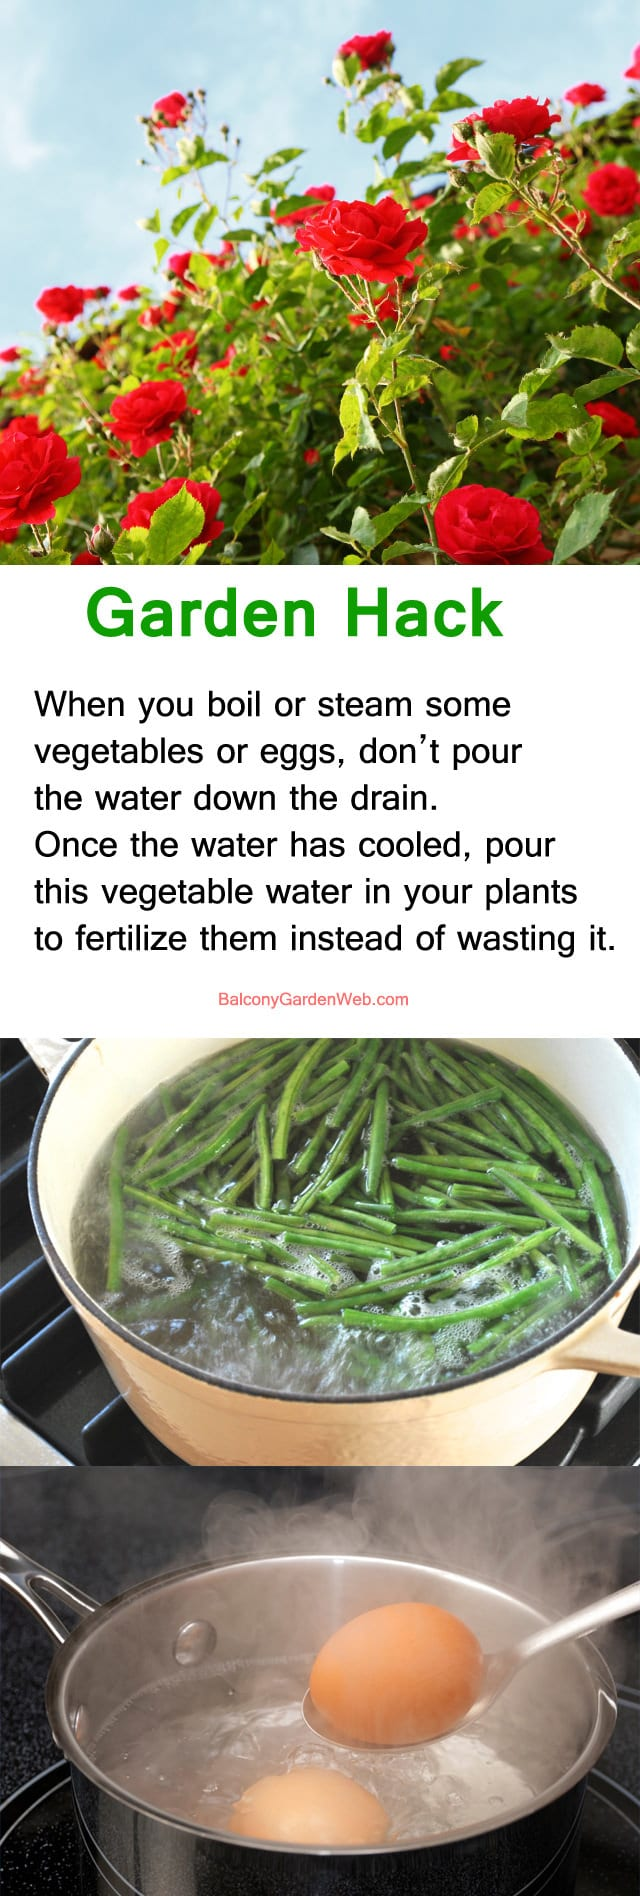 garden-hack-use-cooking-water